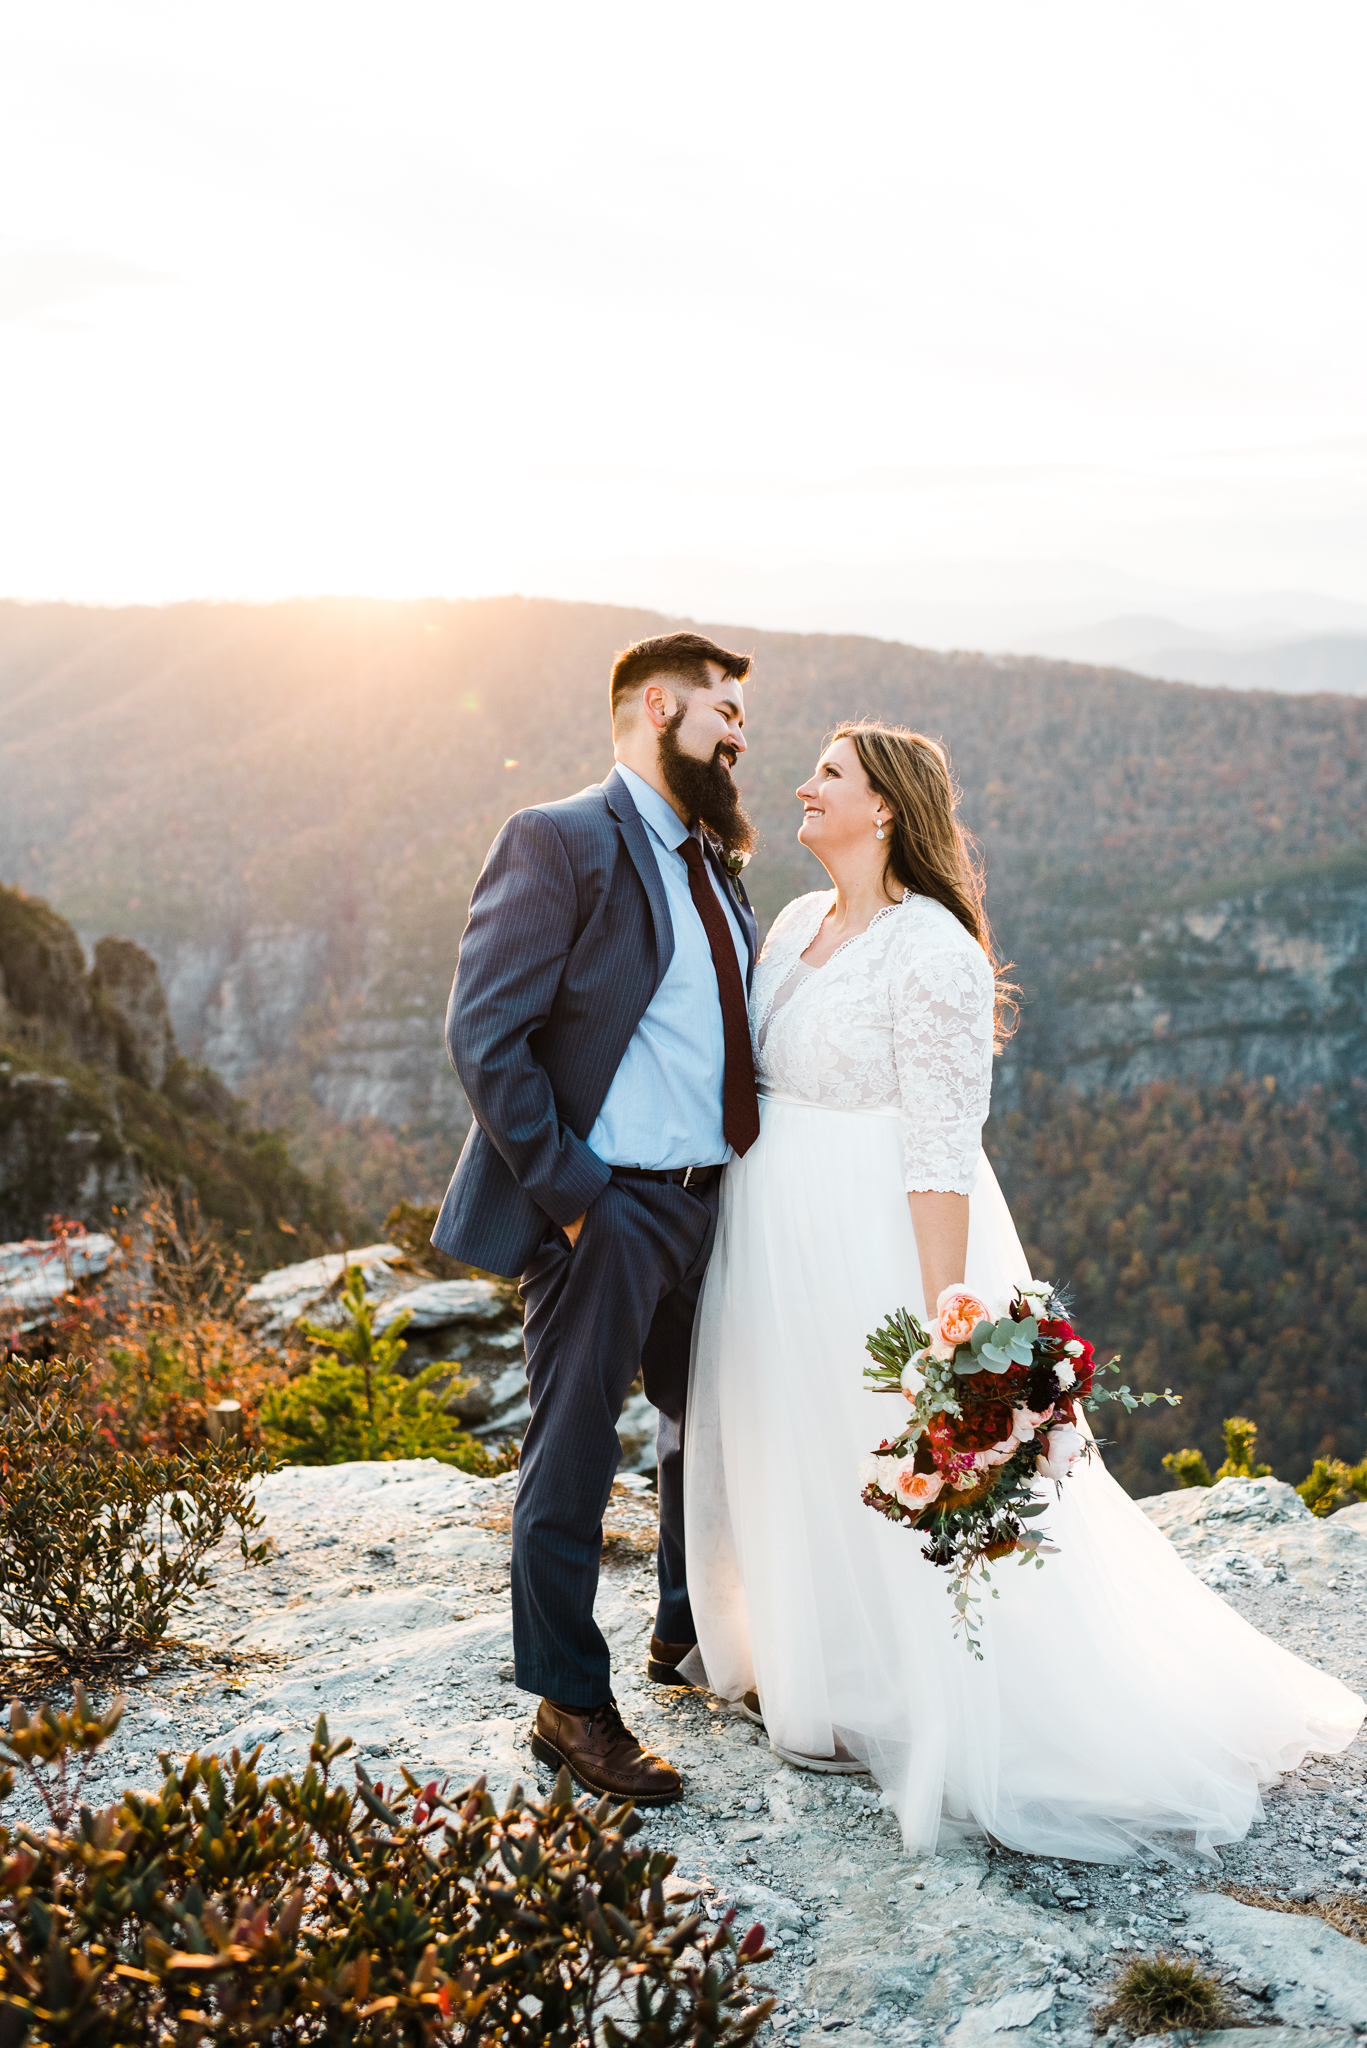 Easterday Creative | Adventurous wedding photographer and visual storyteller for rad people and unique brands | Blue Ridge Mountains elopement, North Carolina